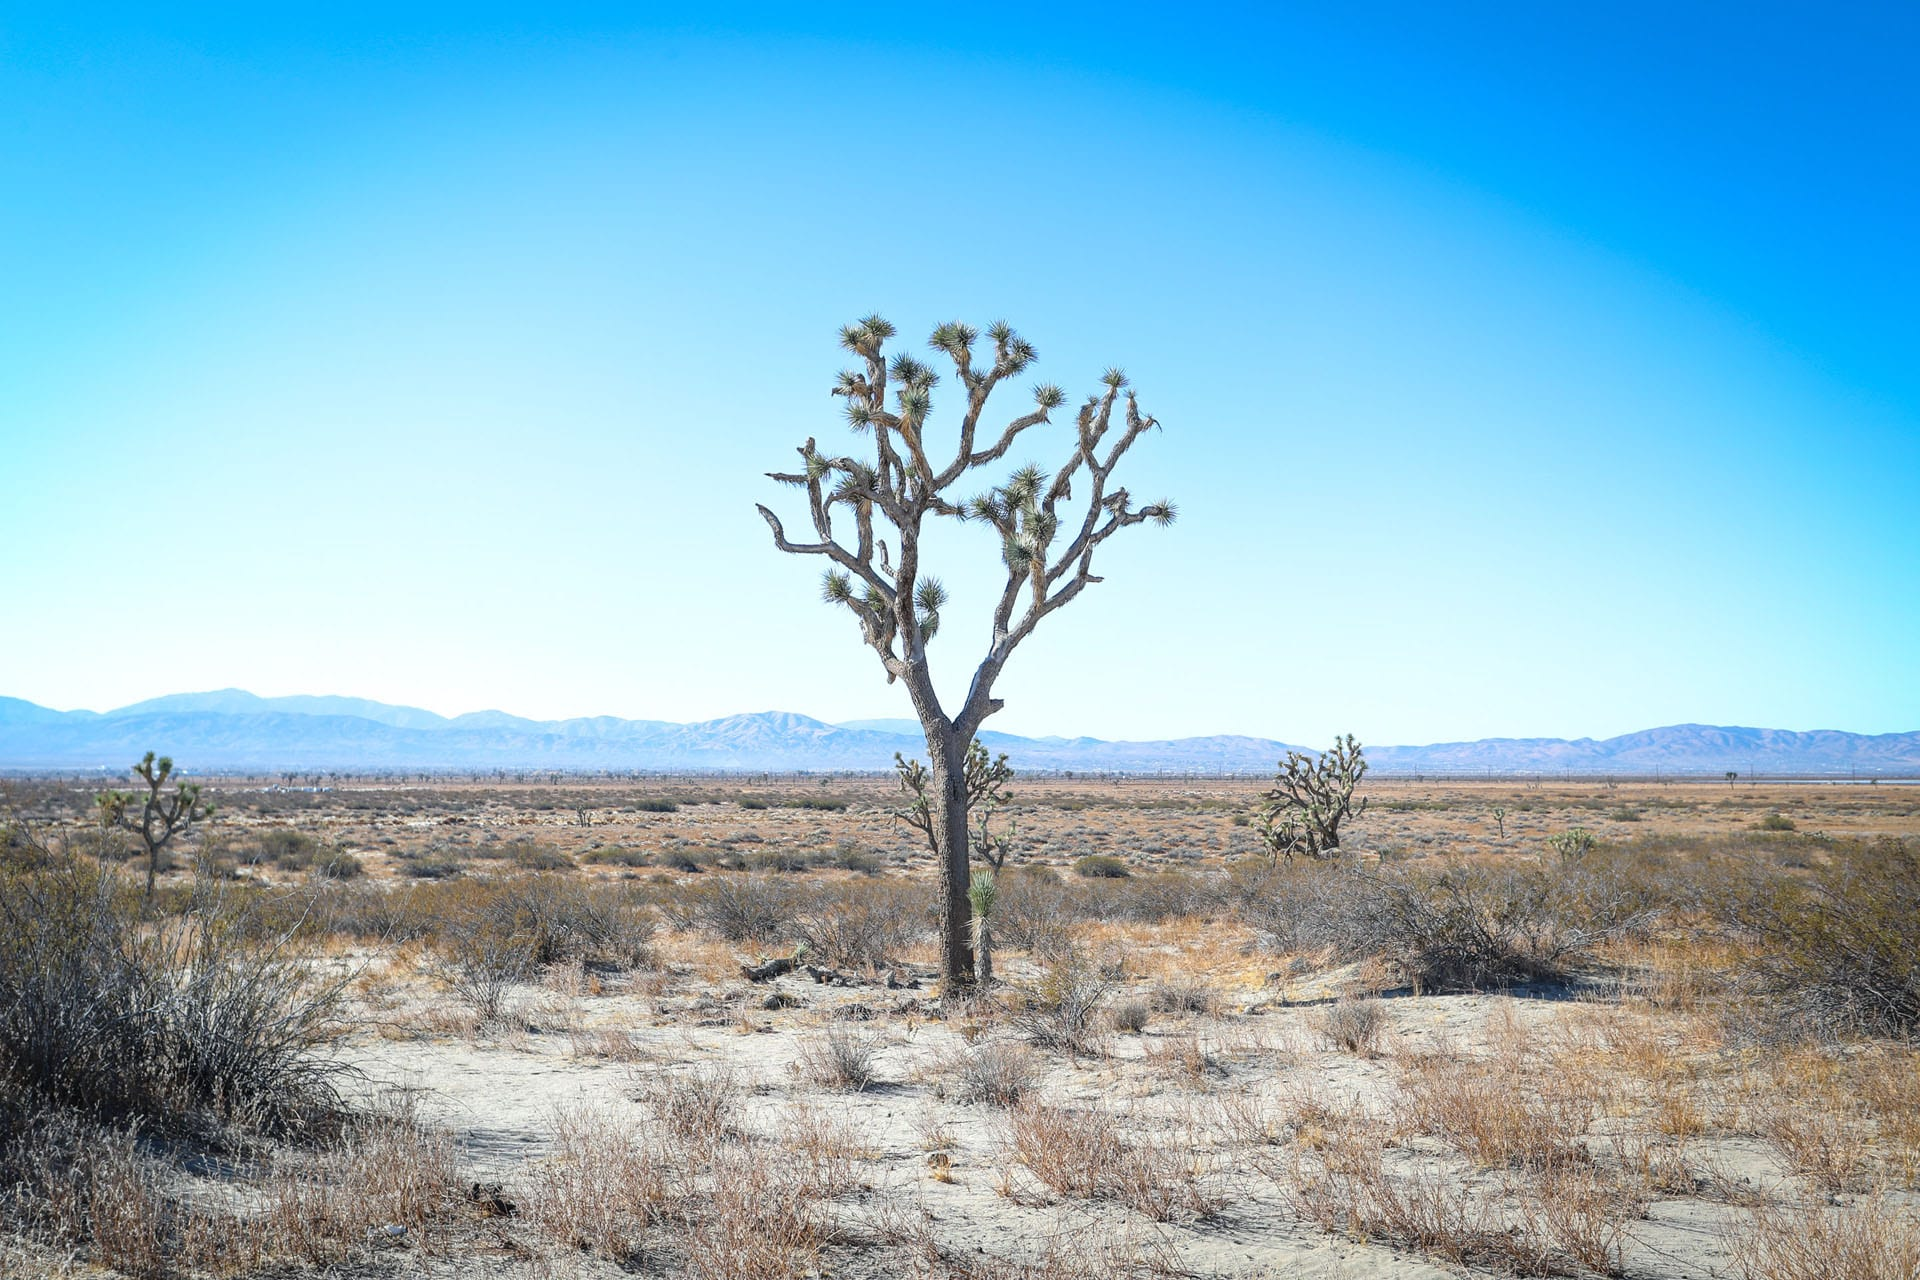 Joshua trees in a desert